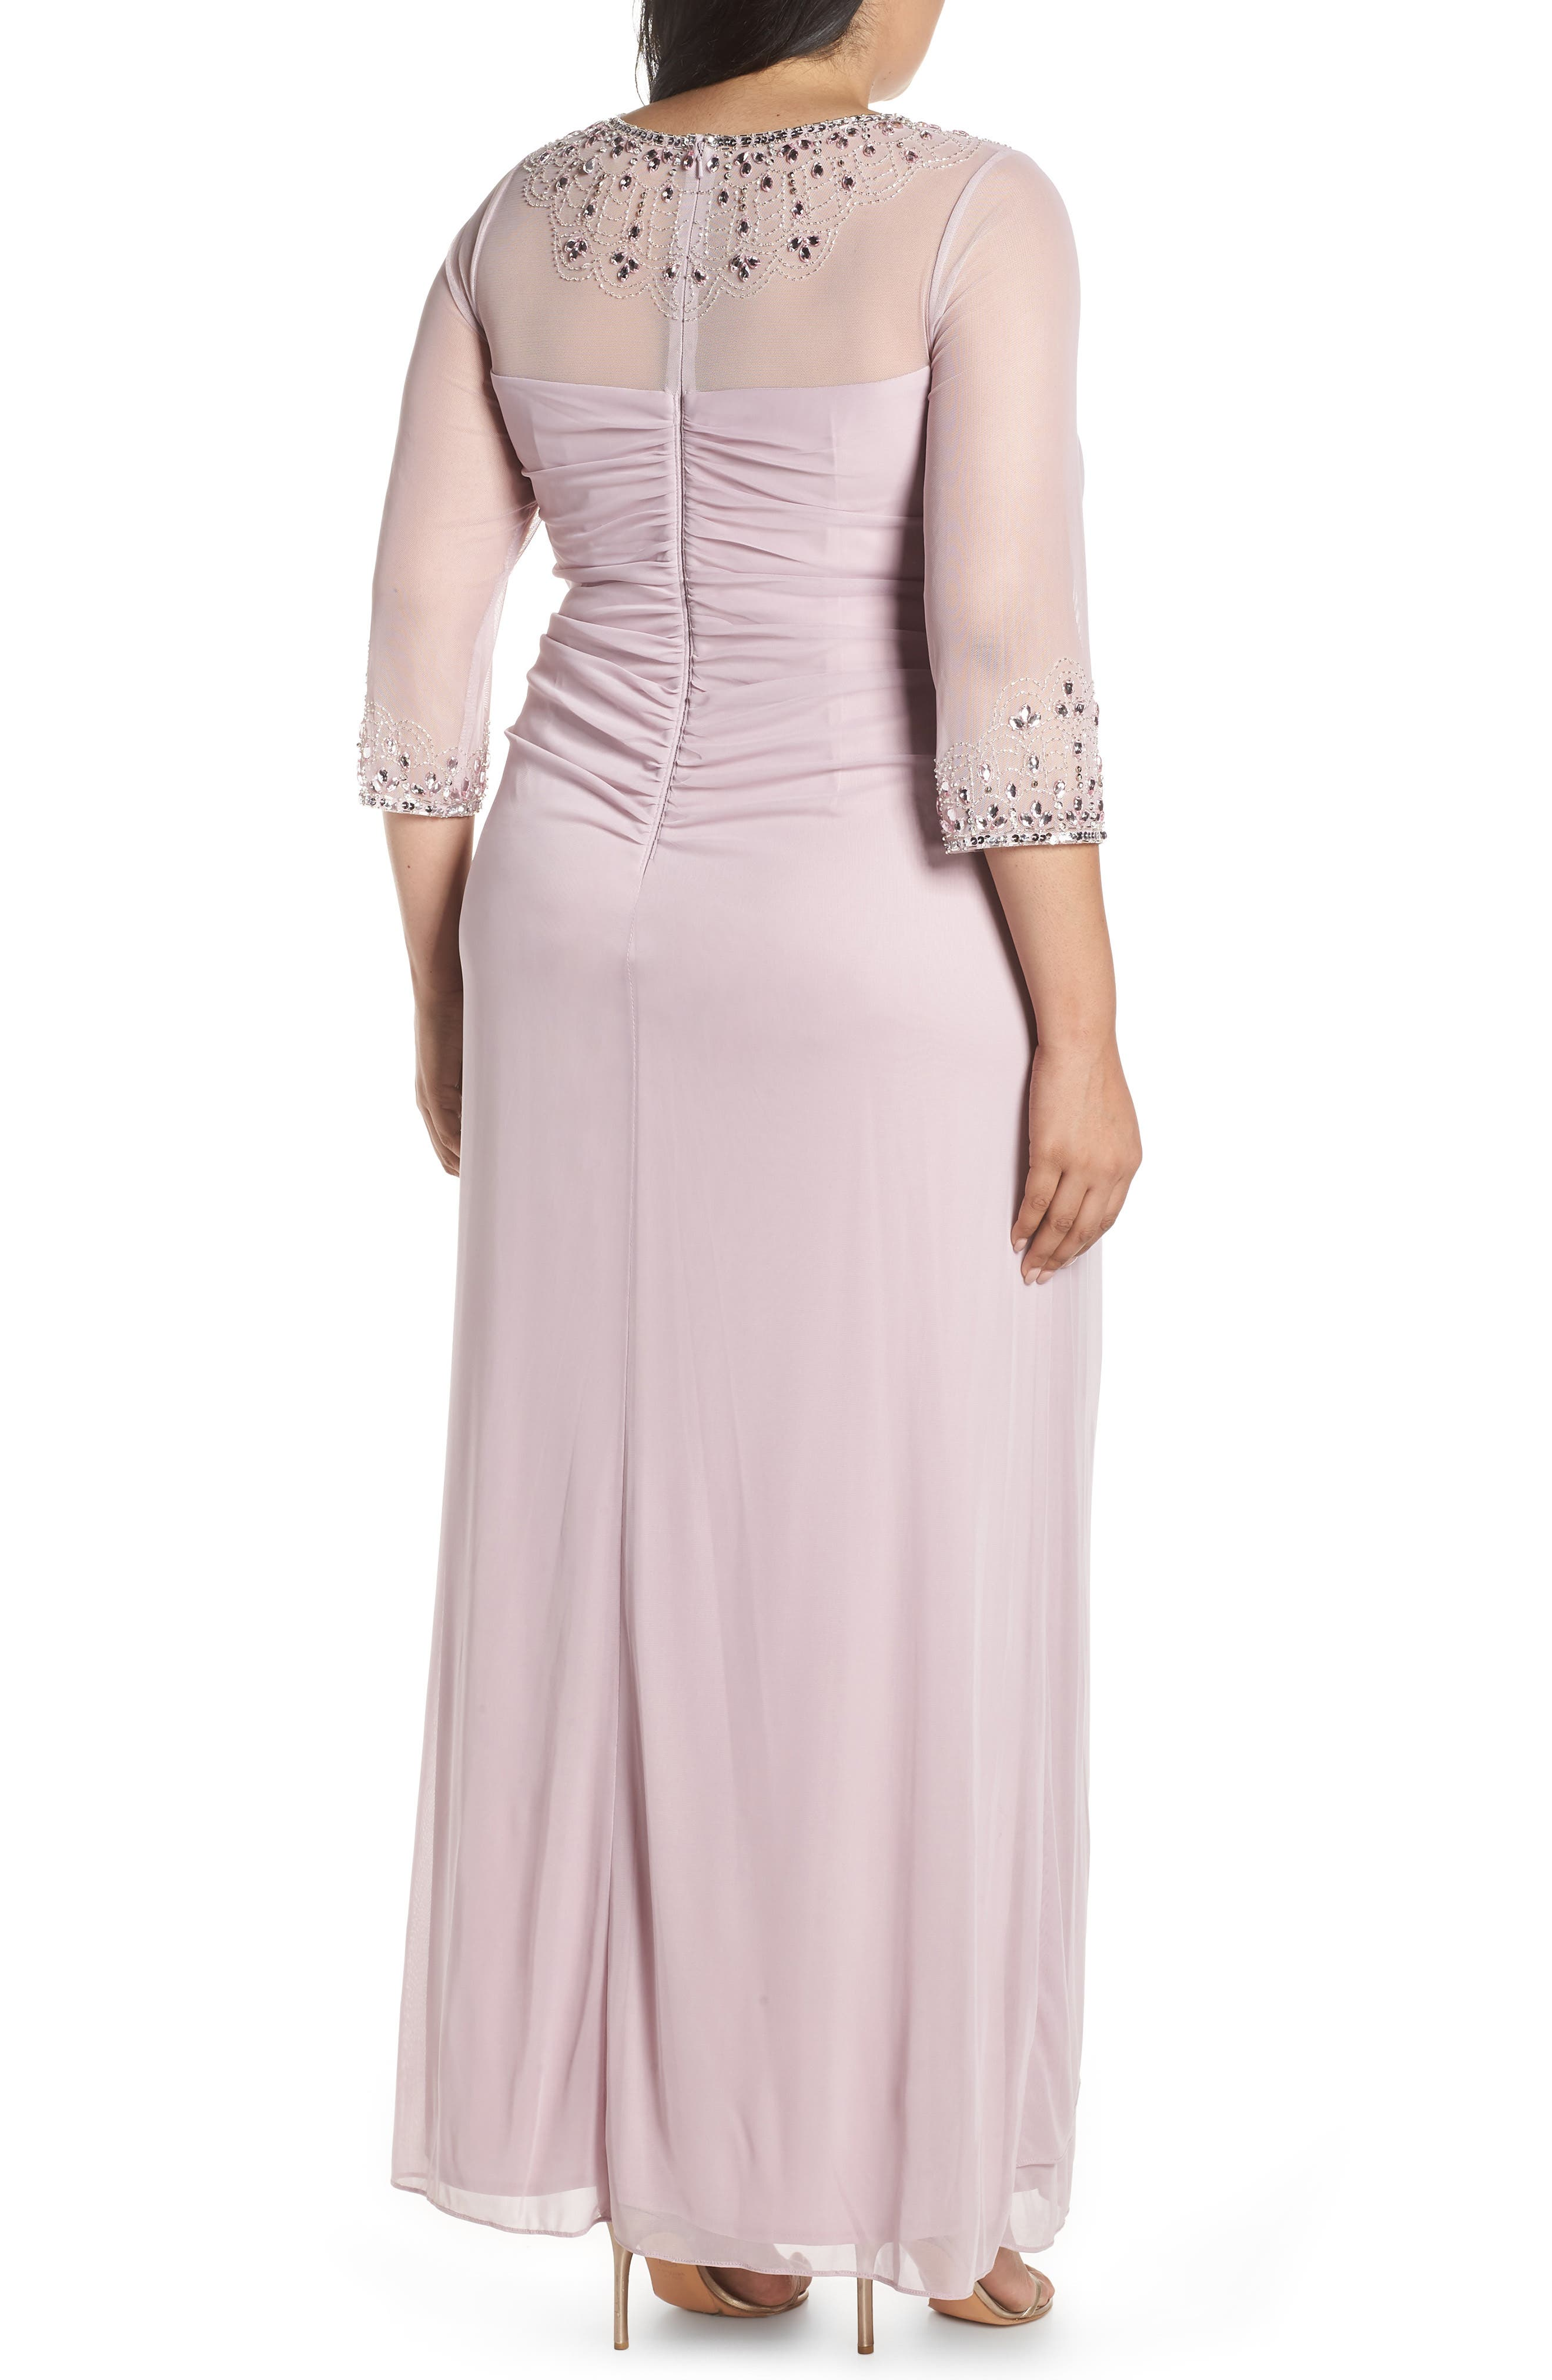 ALEX EVENINGS, Beaded Illusion Neck A-Line Gown, Alternate thumbnail 2, color, SMOKEY ORCHID